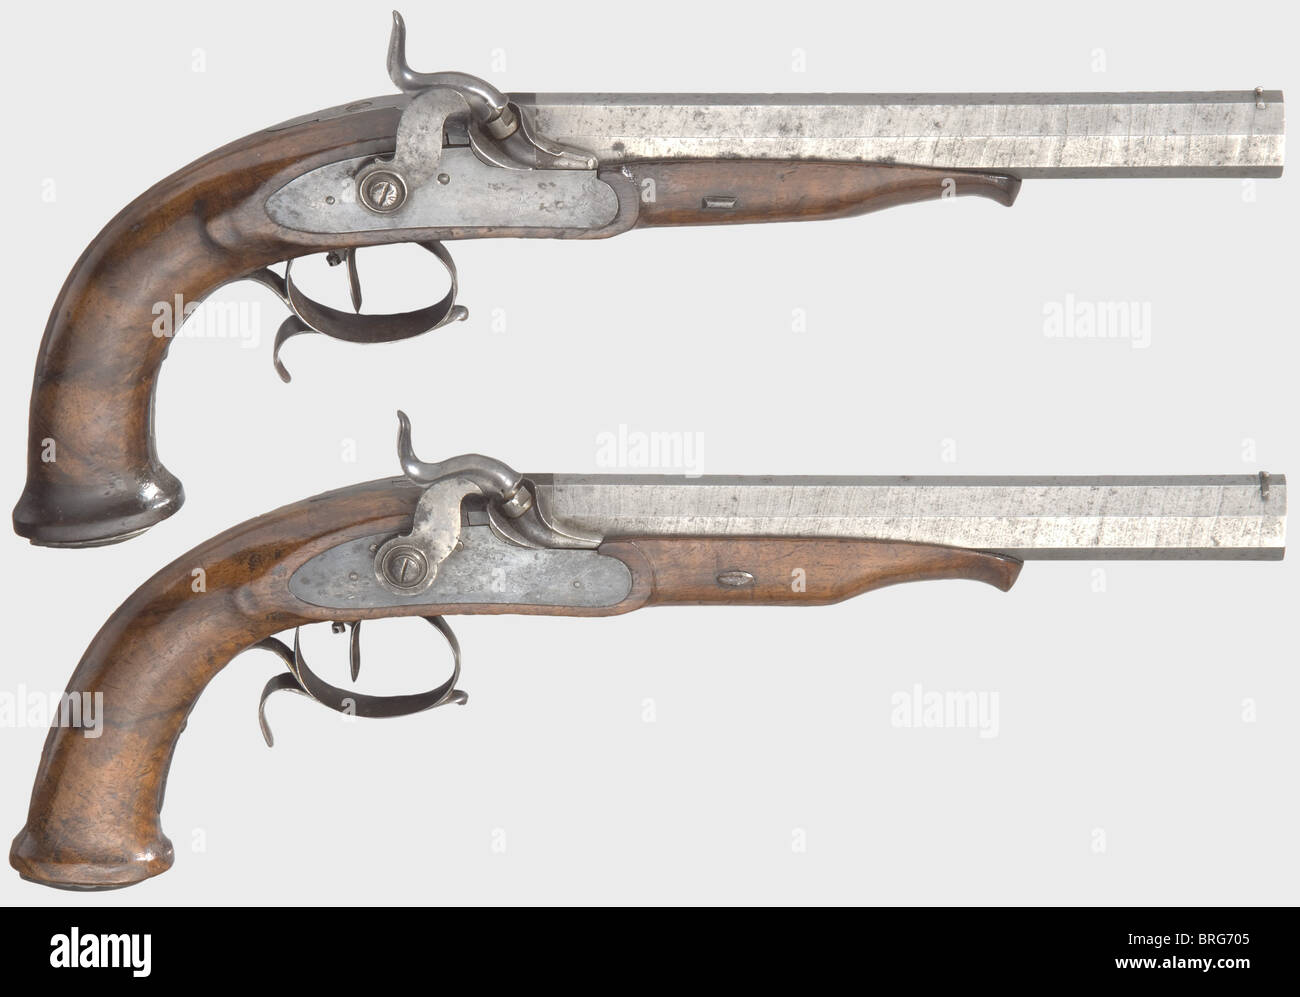 A pair of percussion pistols, Liège, 1st half of the 19th century. Octagonal rifled barrels in 16 mm calibre - Stock Image